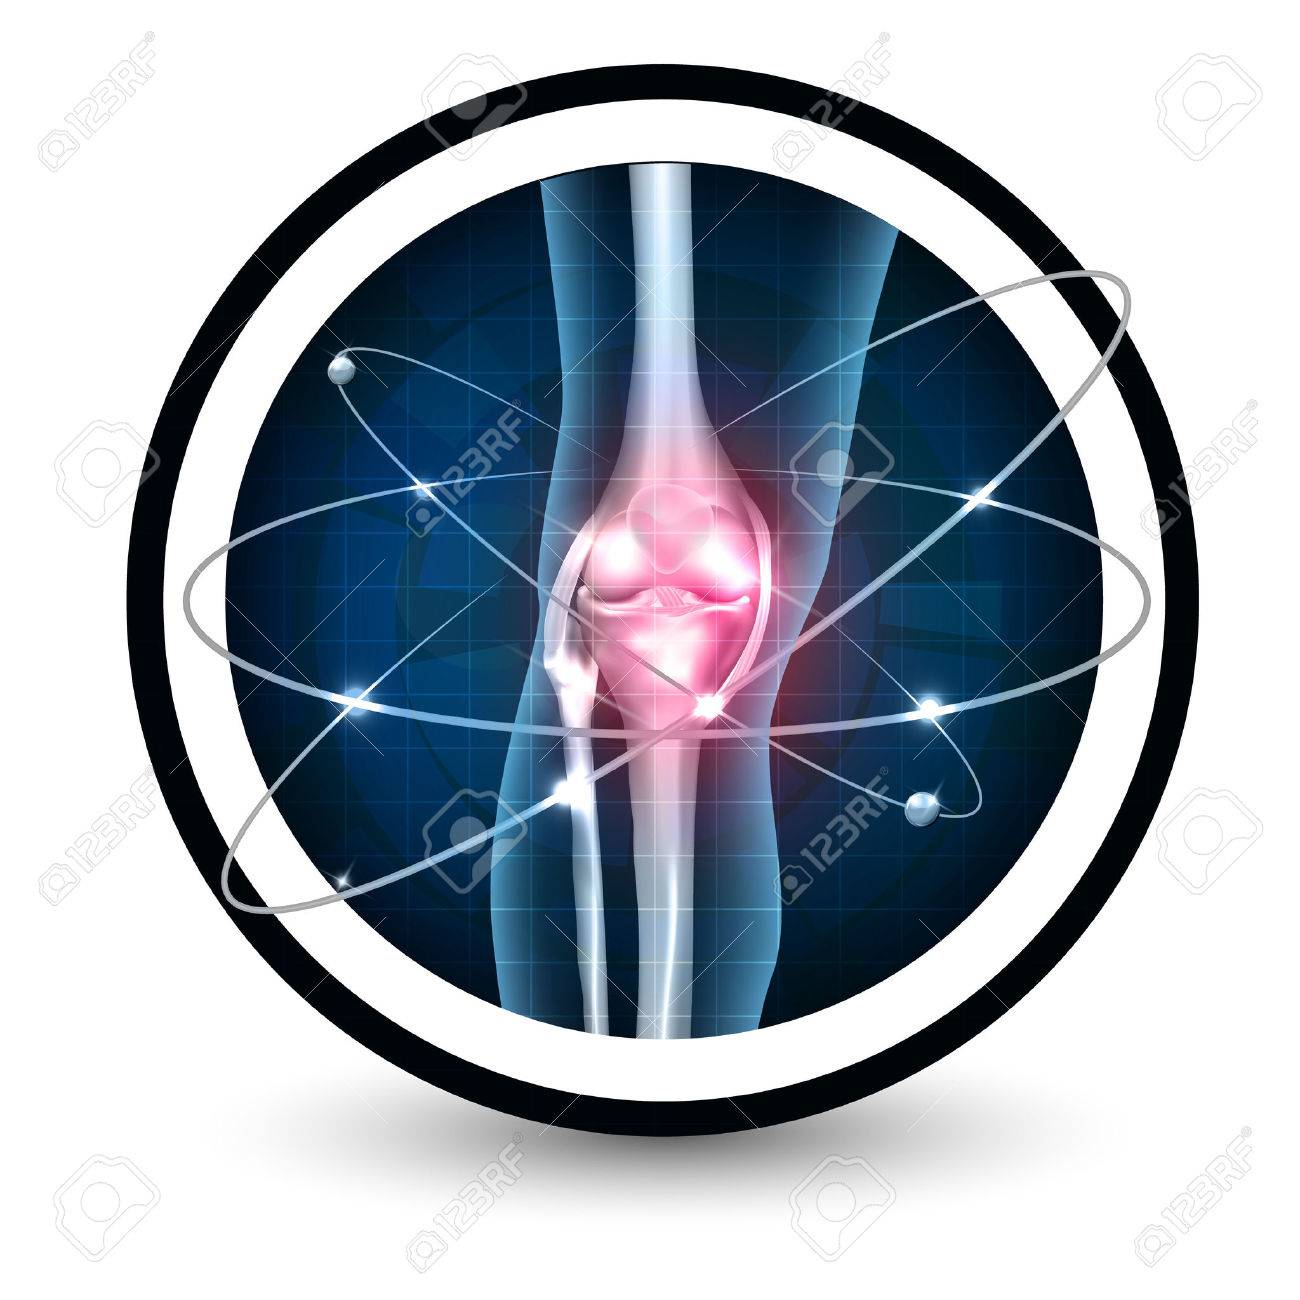 Knee joint health care protection icon - 78251925